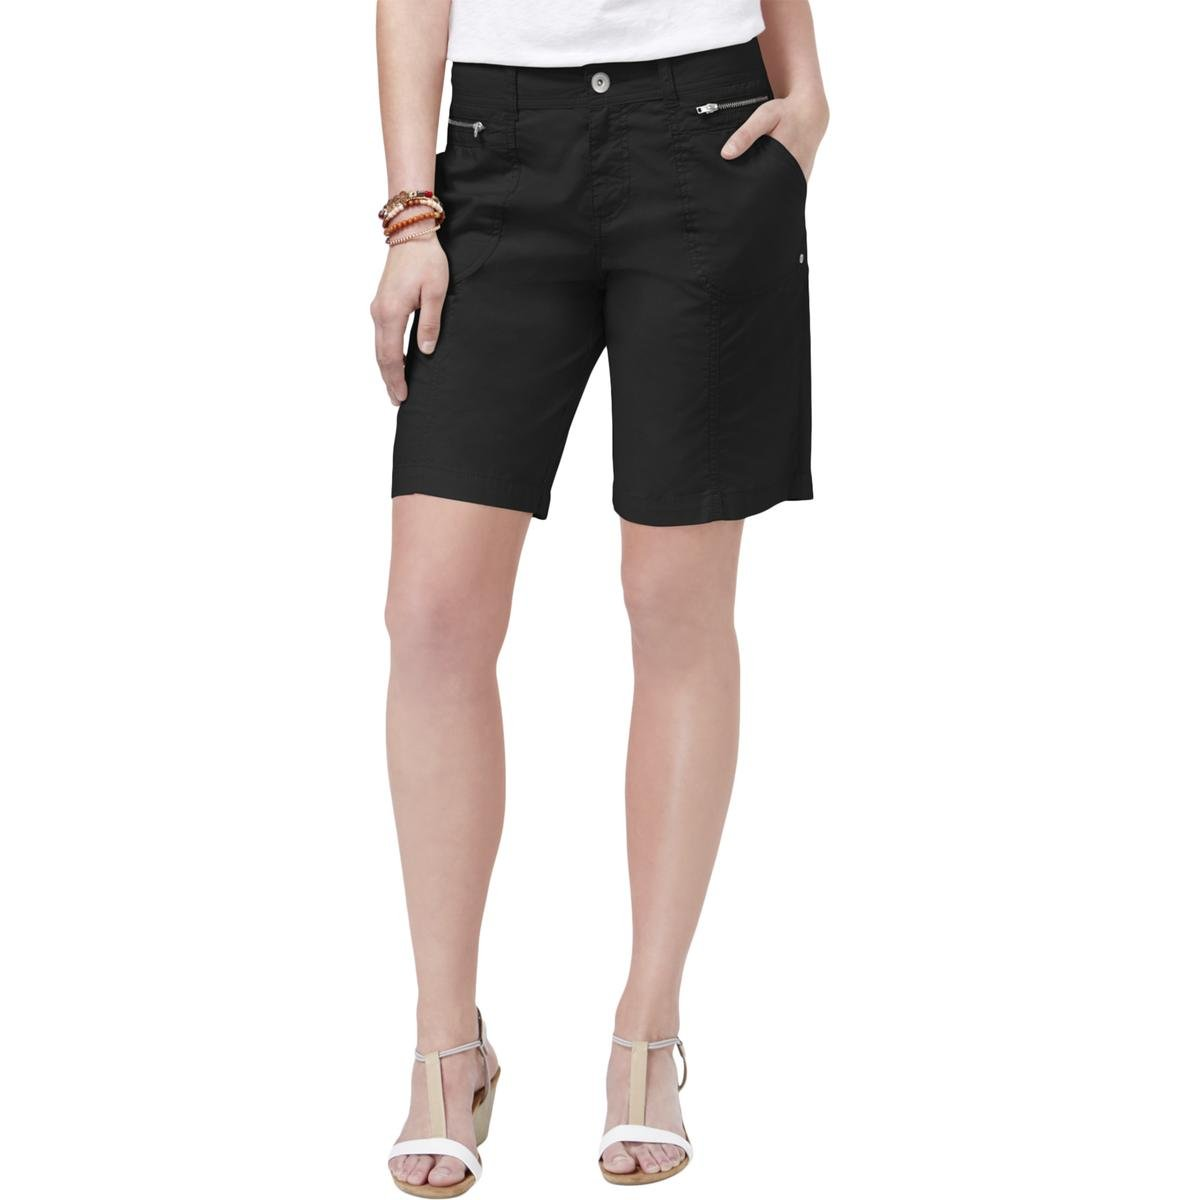 Style & Co. Womens Petites Mid-Rise Front Zip Casual Shorts Black 6P